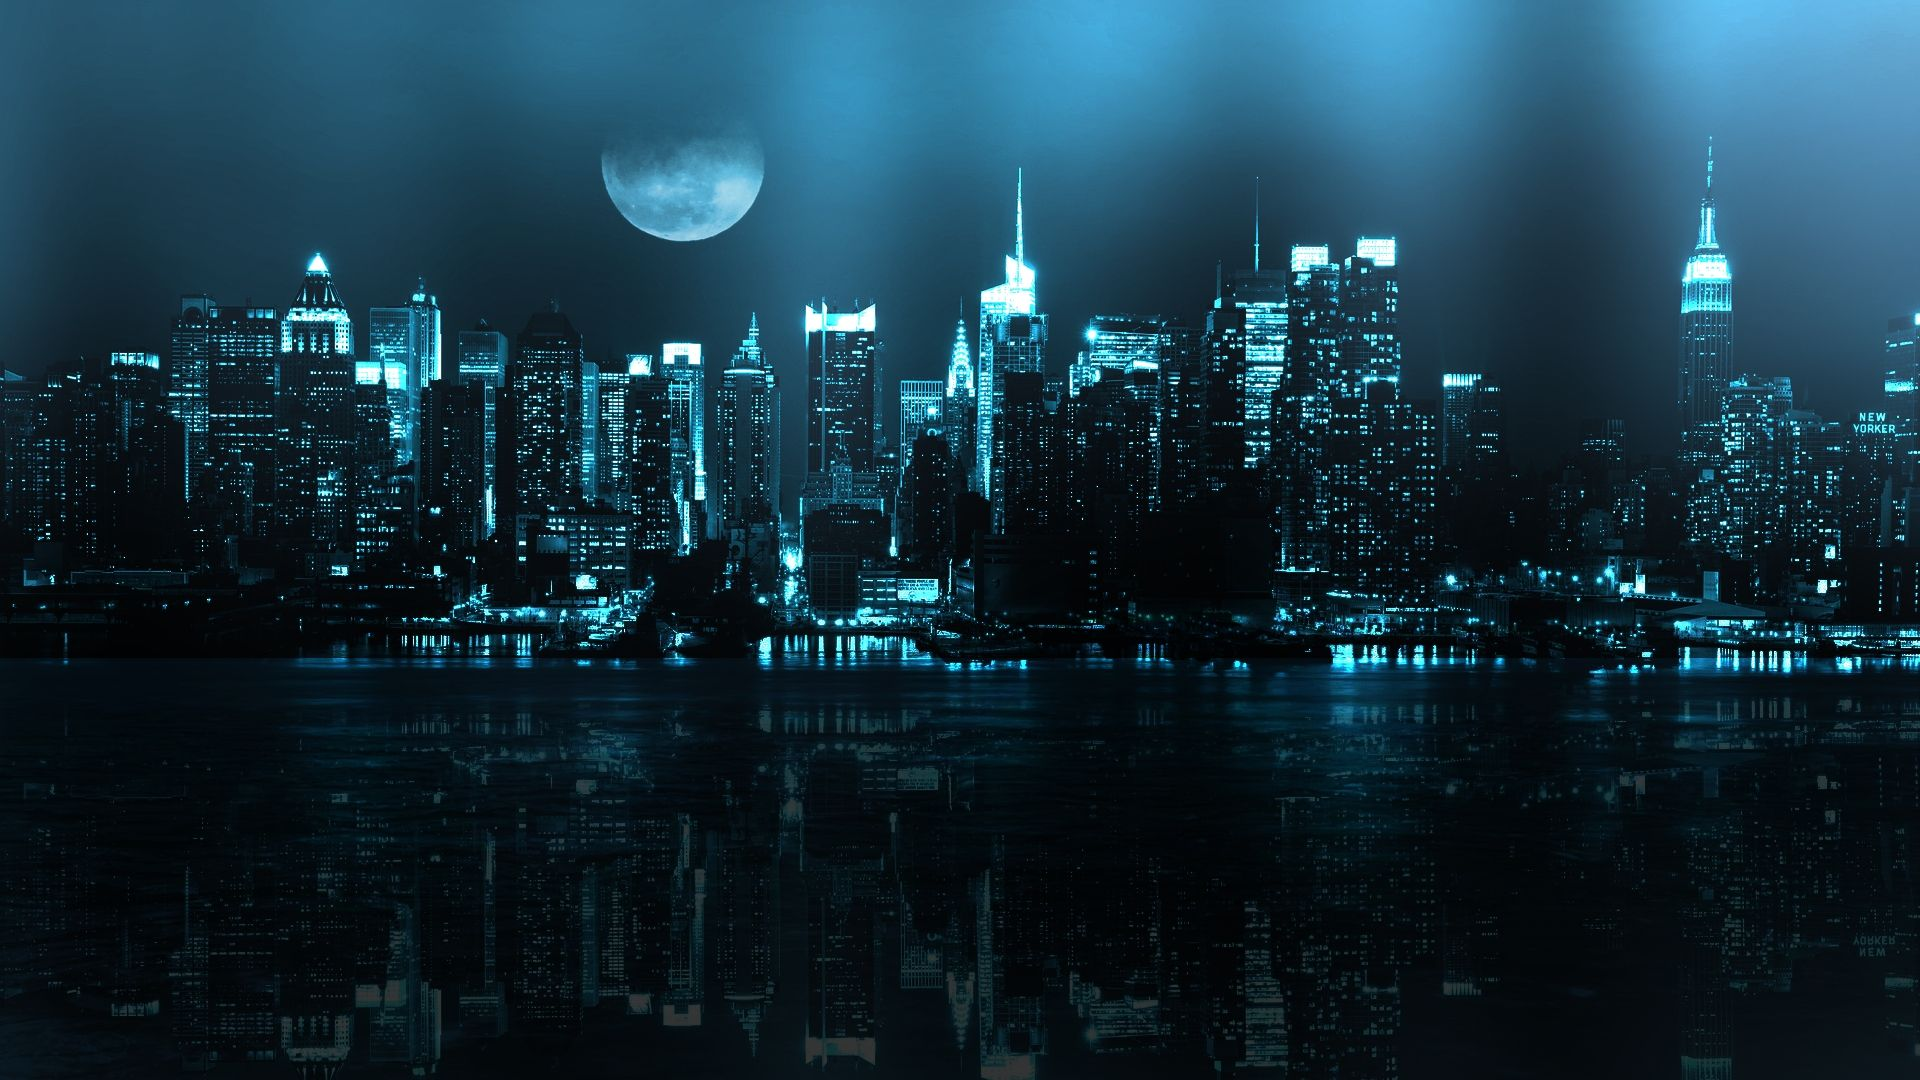 Awesome Wallpaper Desktop Background Amazing Wallpapers City